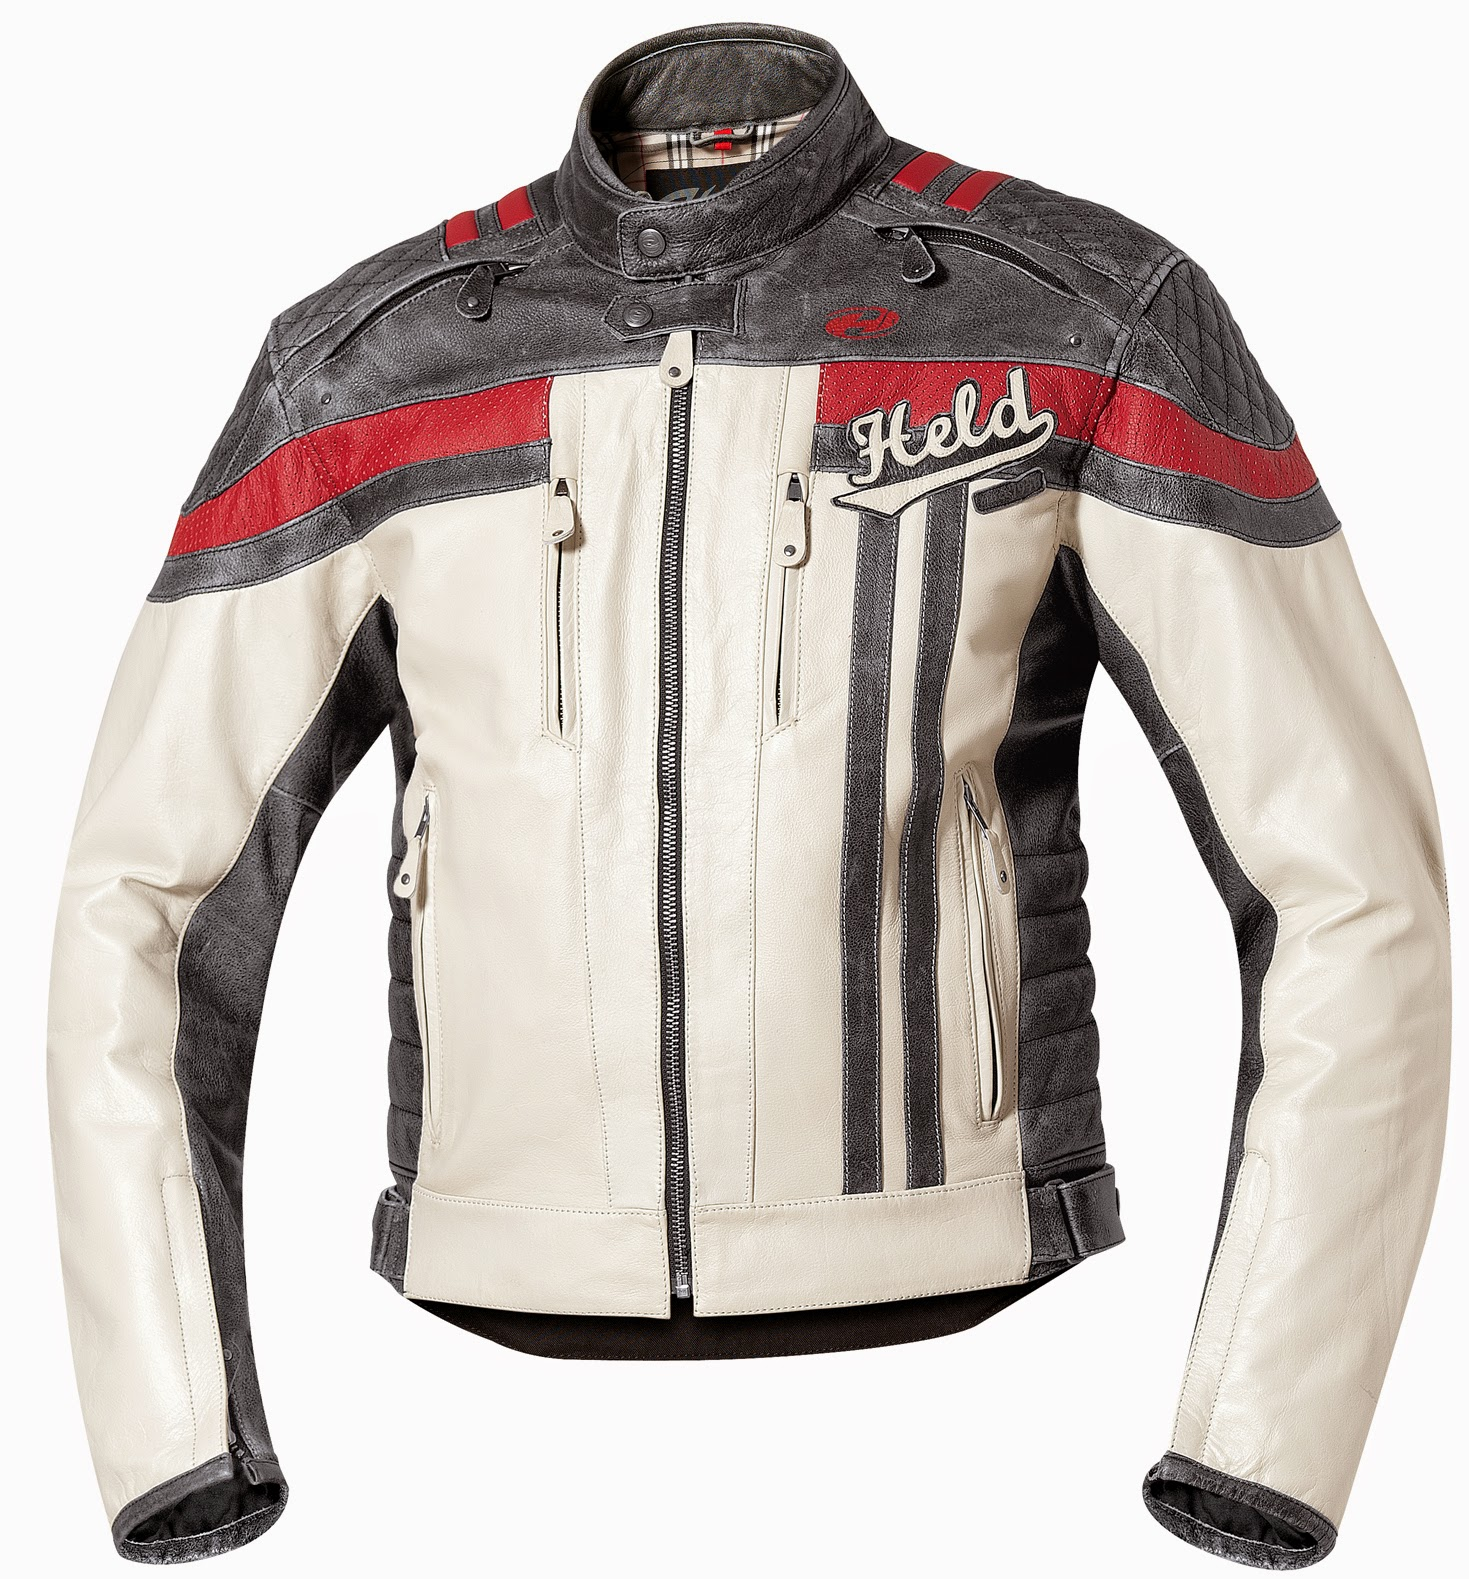 Held make the best motorcycle leathers